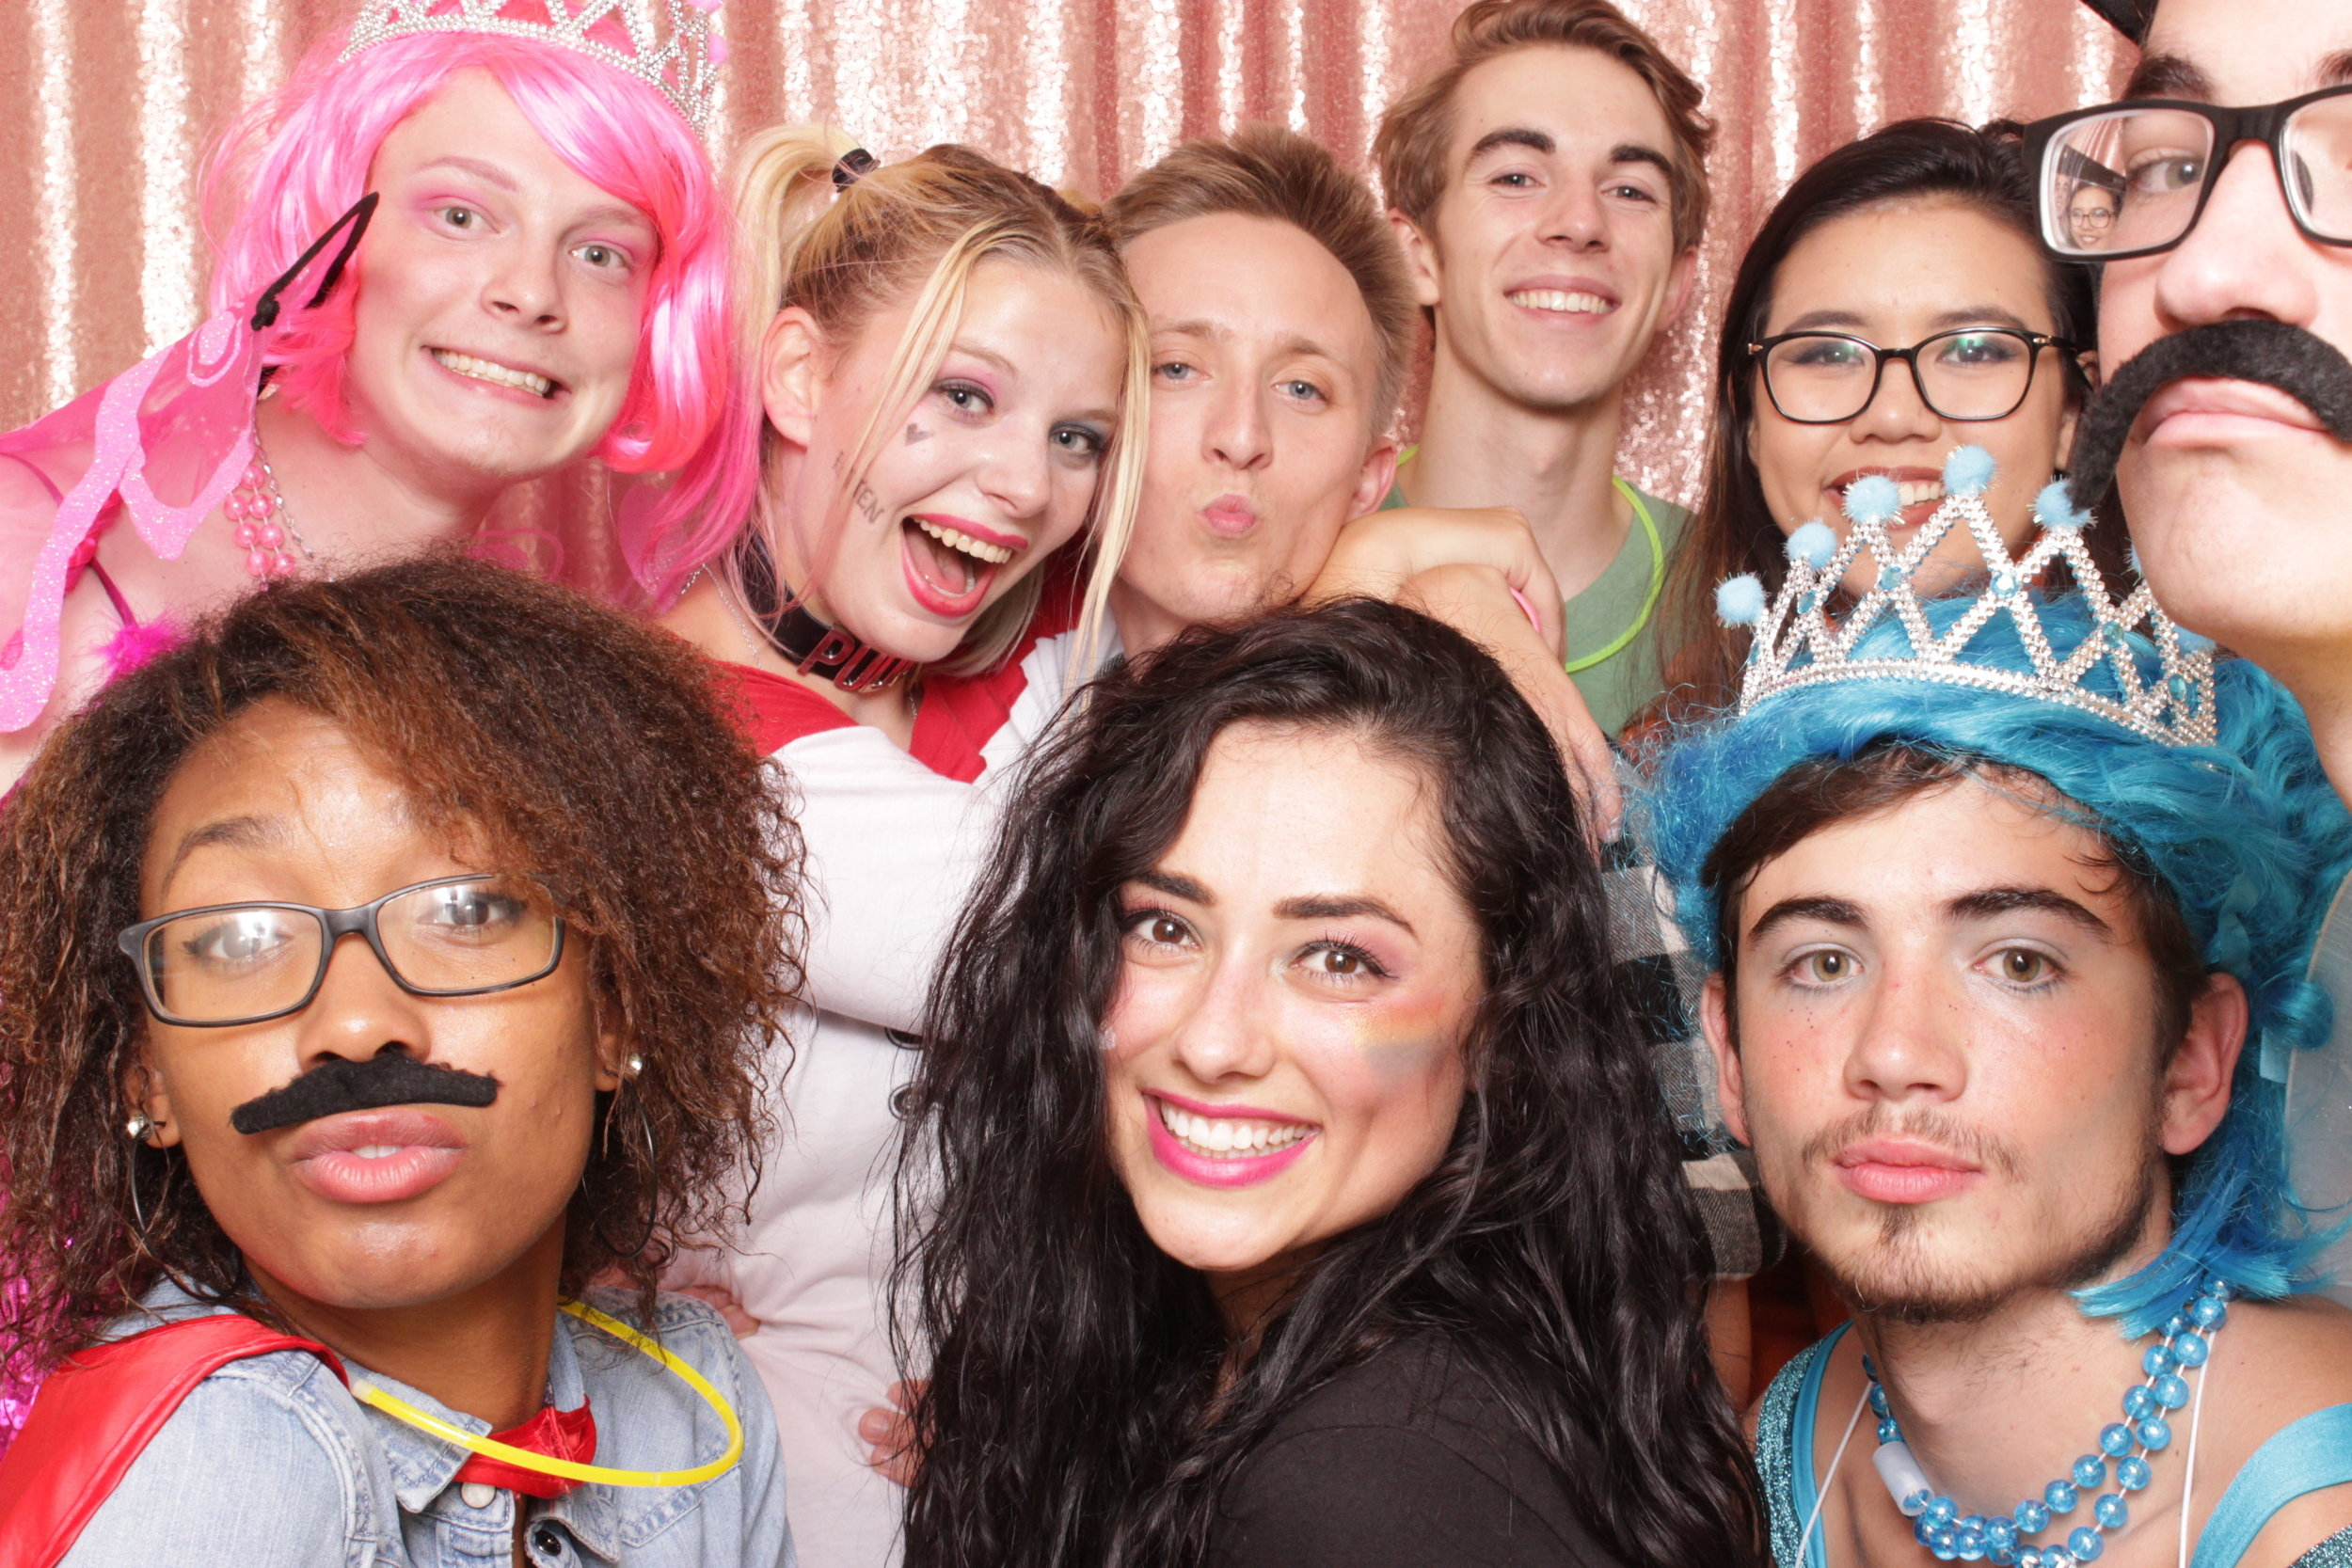 Chico-photo-booth-rental-multiple-people